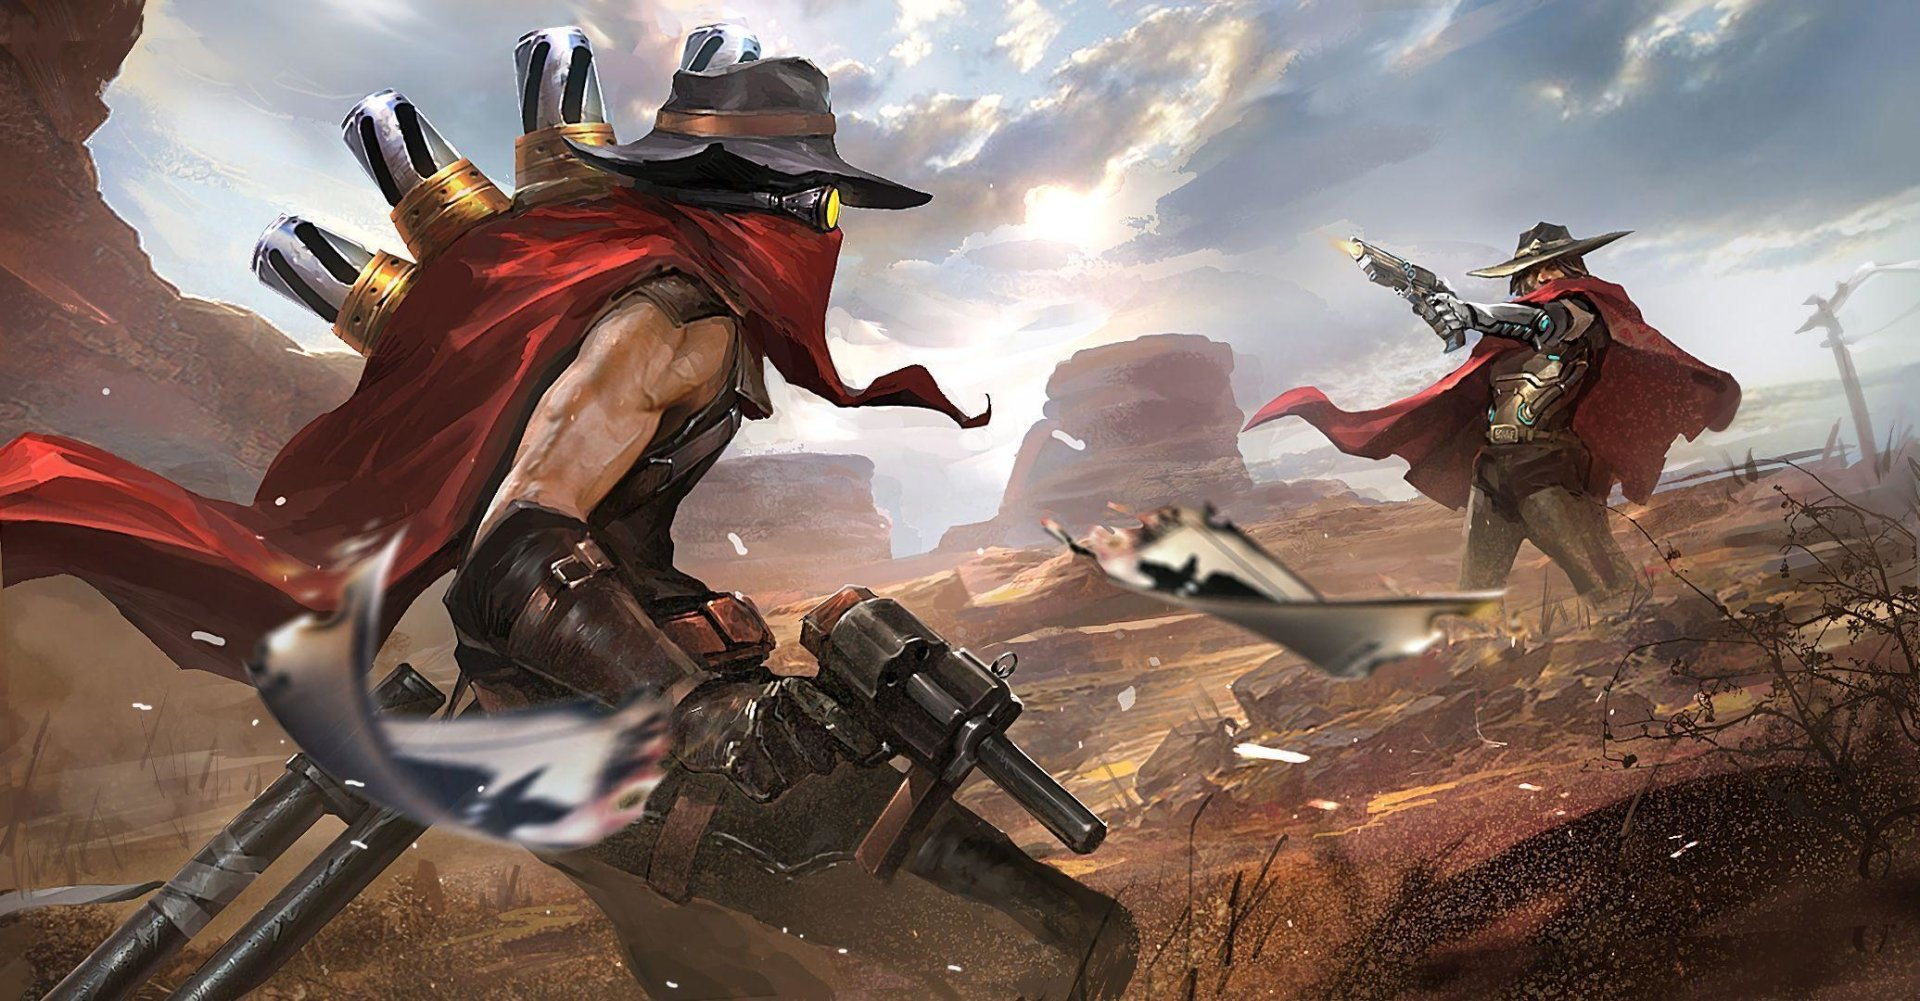 Video Game - Crossover  Overwatch McCree (Overwatch) Jhin (League of Legends) League Of Legends Wallpaper